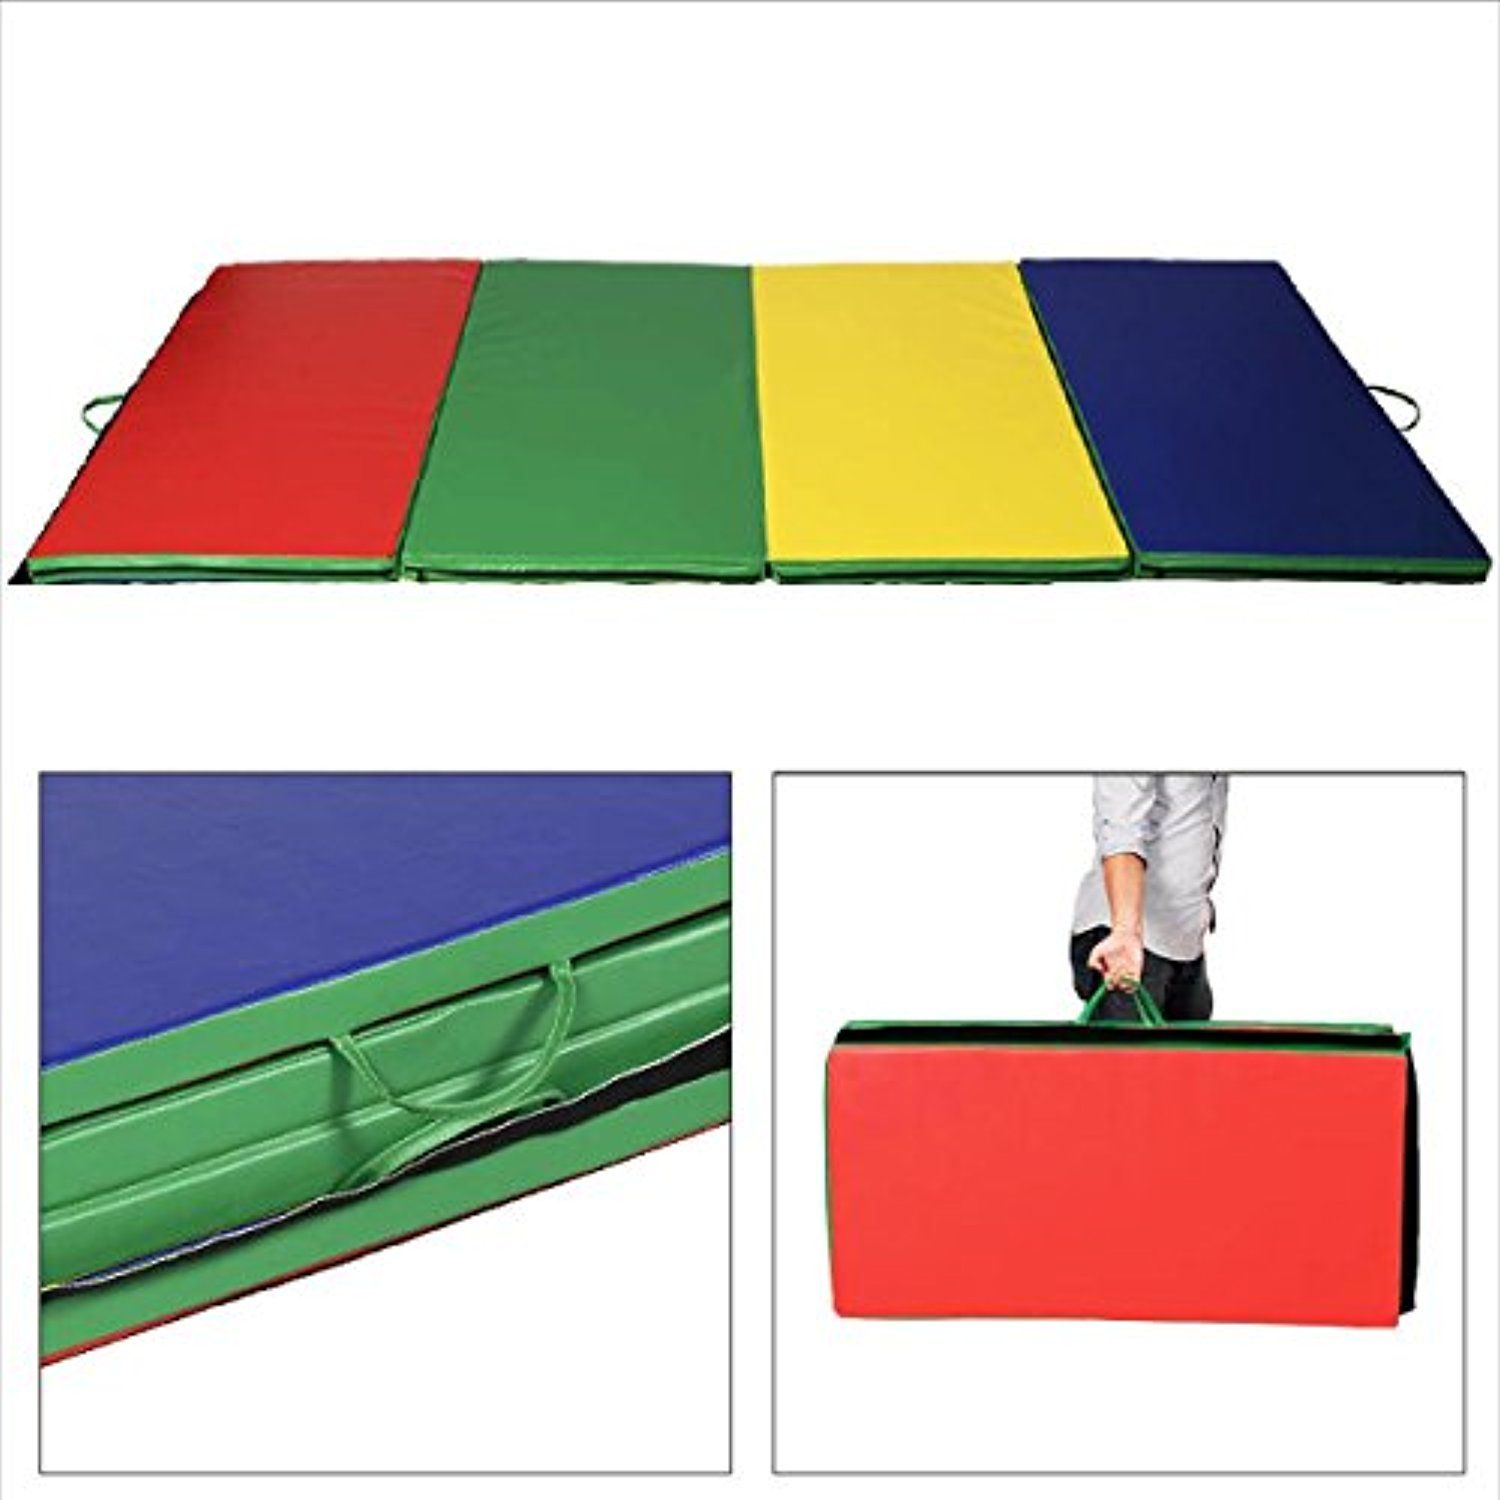 com training blue mat foam mats triangle choice gymnastics dp products wedge used amazon incline sports yellow best tumbling gym